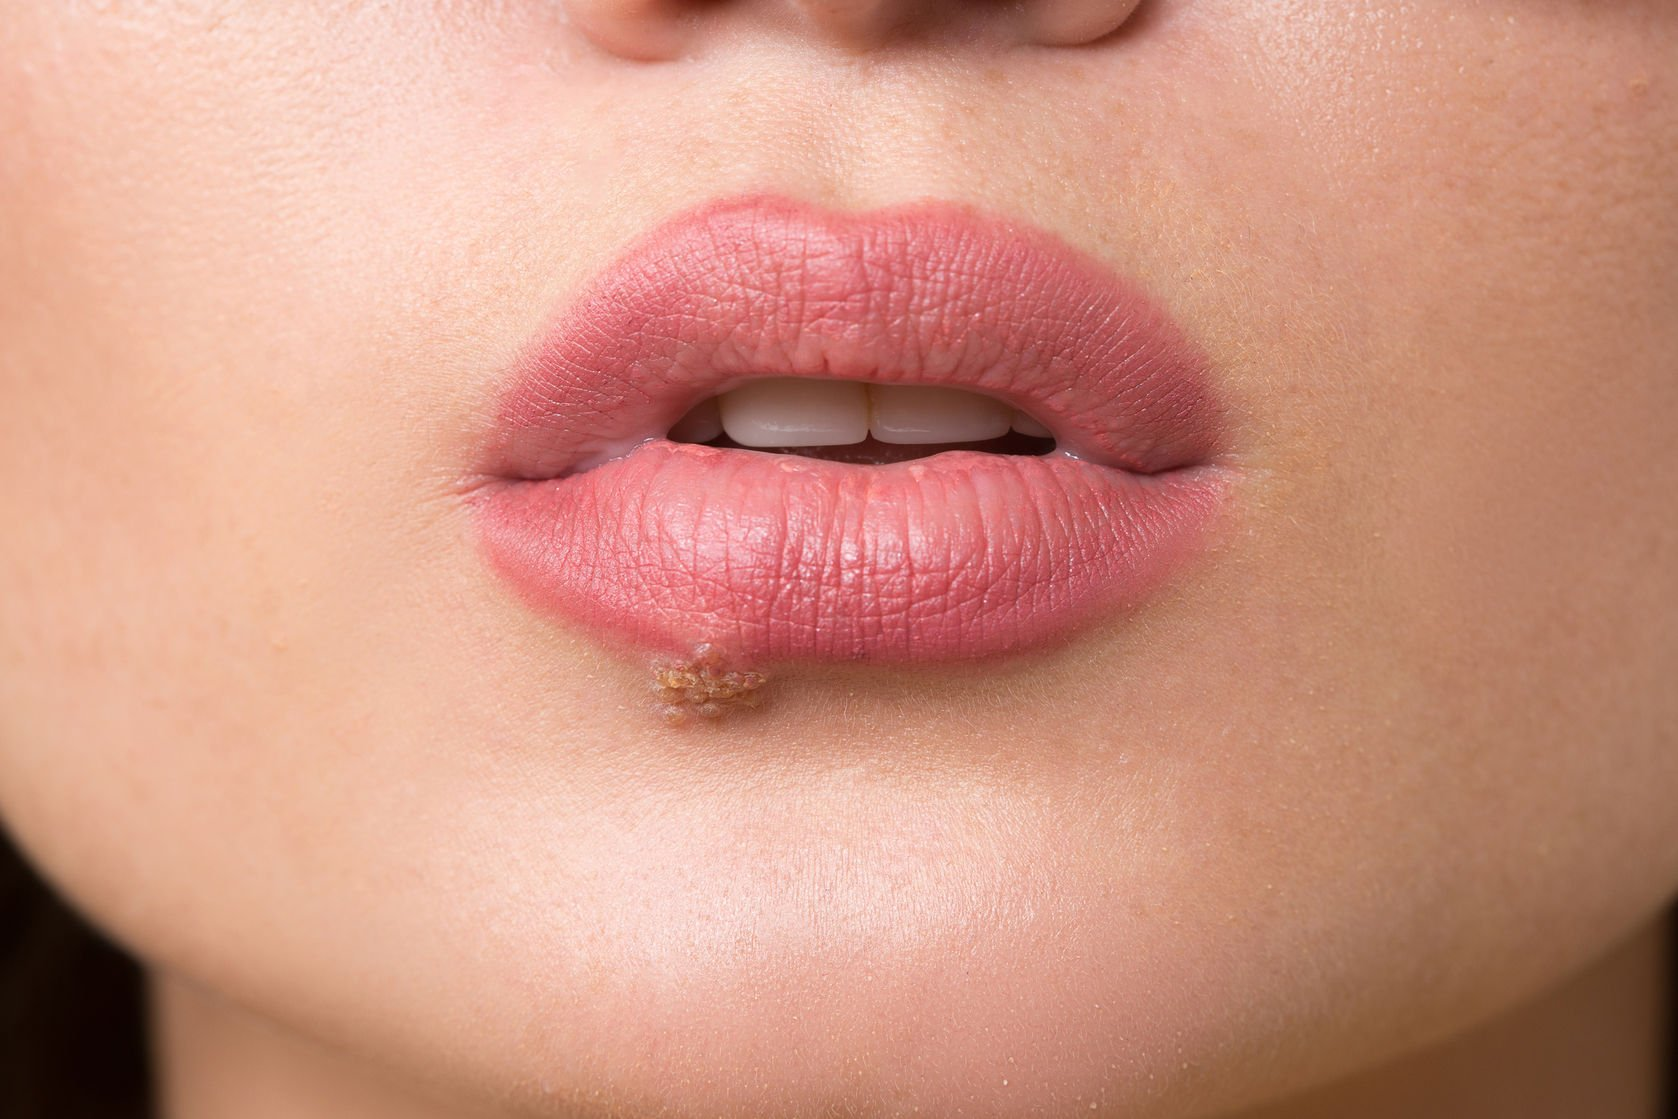 Now That's a Cold Sore! – Naturopathic Doctor News and Review